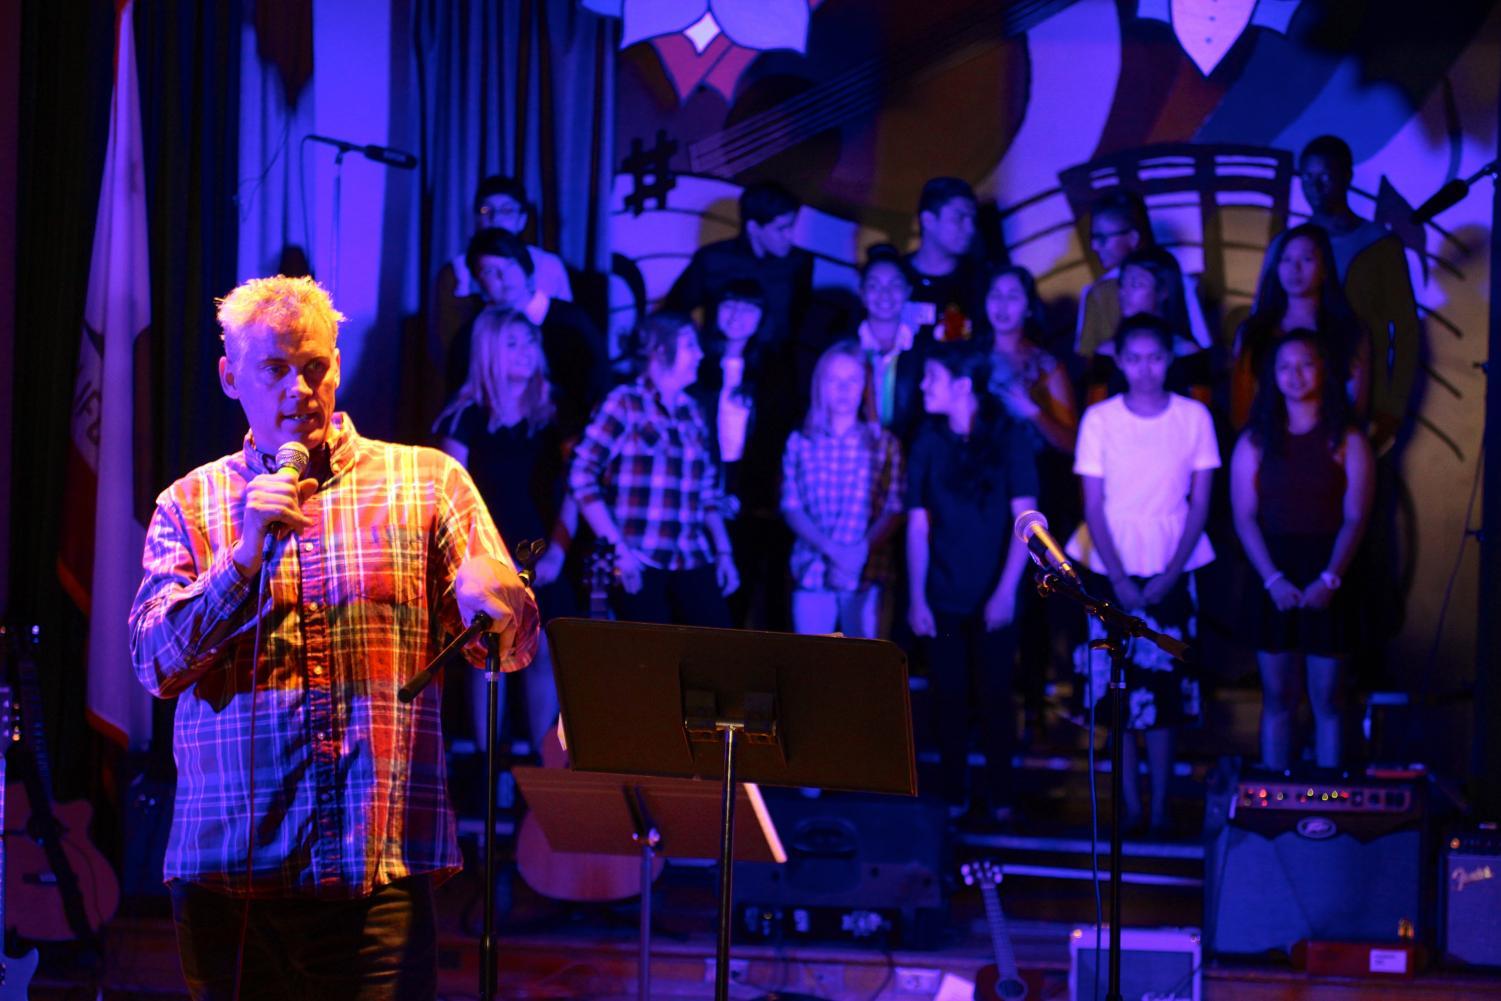 During the 2017 Daniel Pearl World Music Day concert, Music teacher Wes Hambright announces the closing remarks.